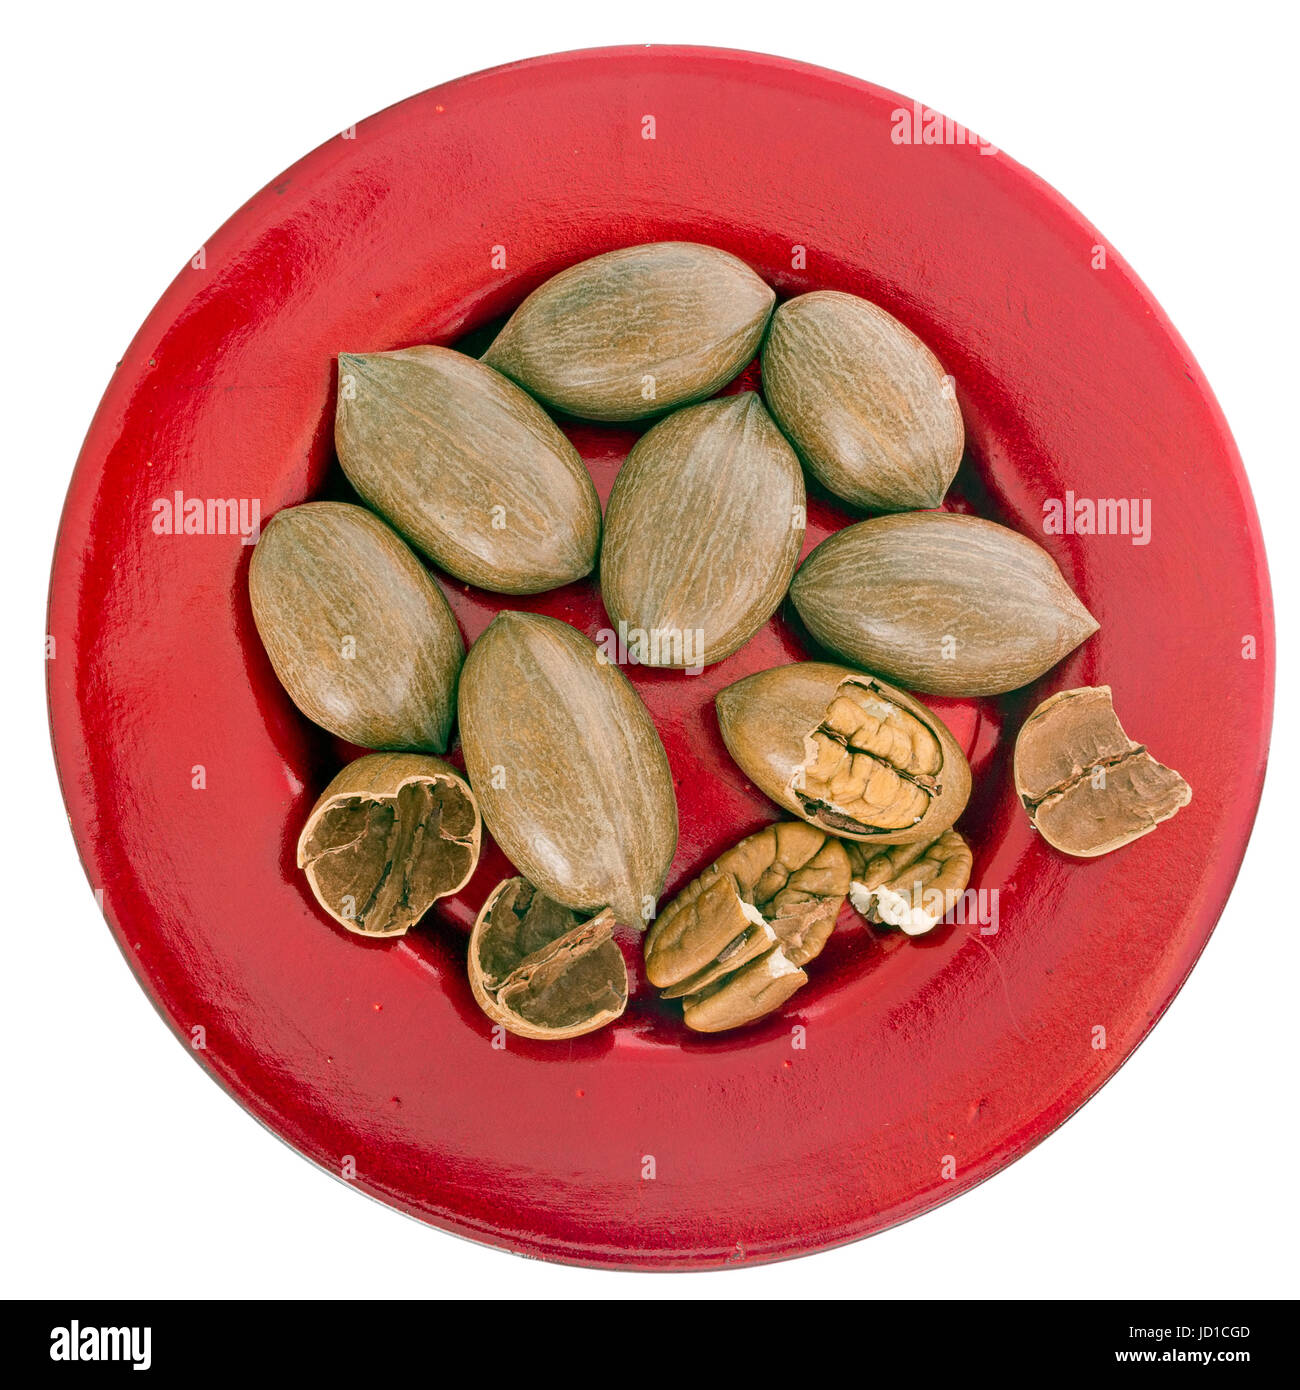 Pecan nuts. Full of healthy vitamins, minerals. Isolated on white. - Stock Image